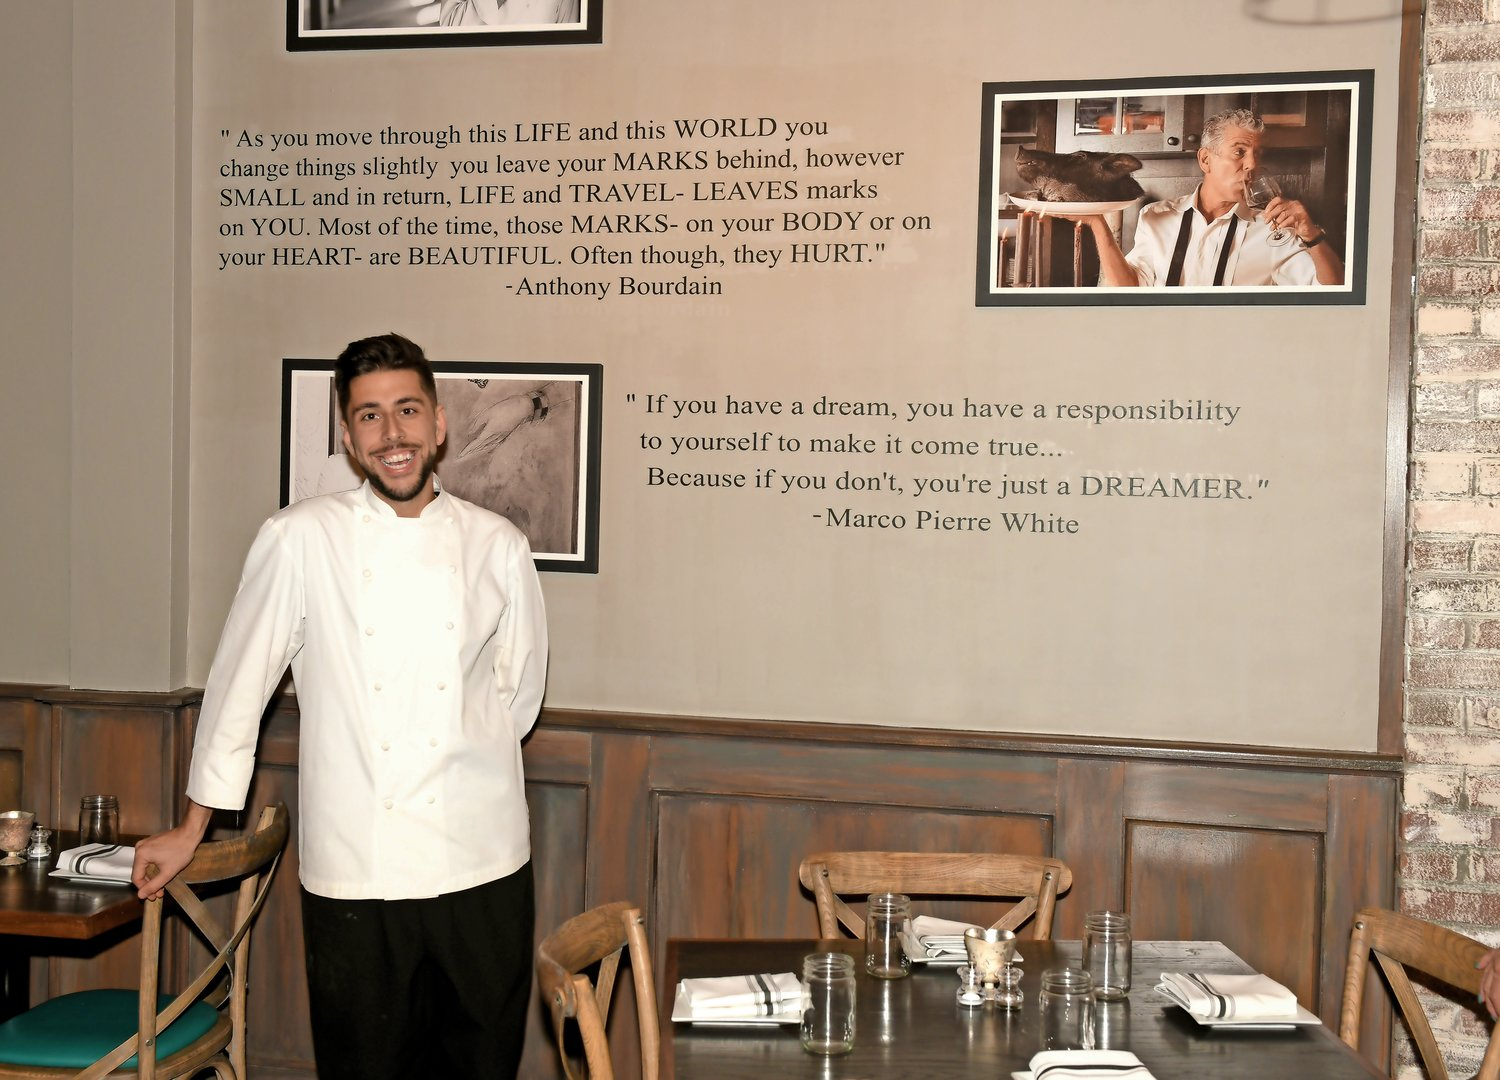 Robert Occhipinti has a wall in his restaurant dedicated to some of his inspirations — Massimo Bottura, Anthony Bourdain and Marco Pierre White.